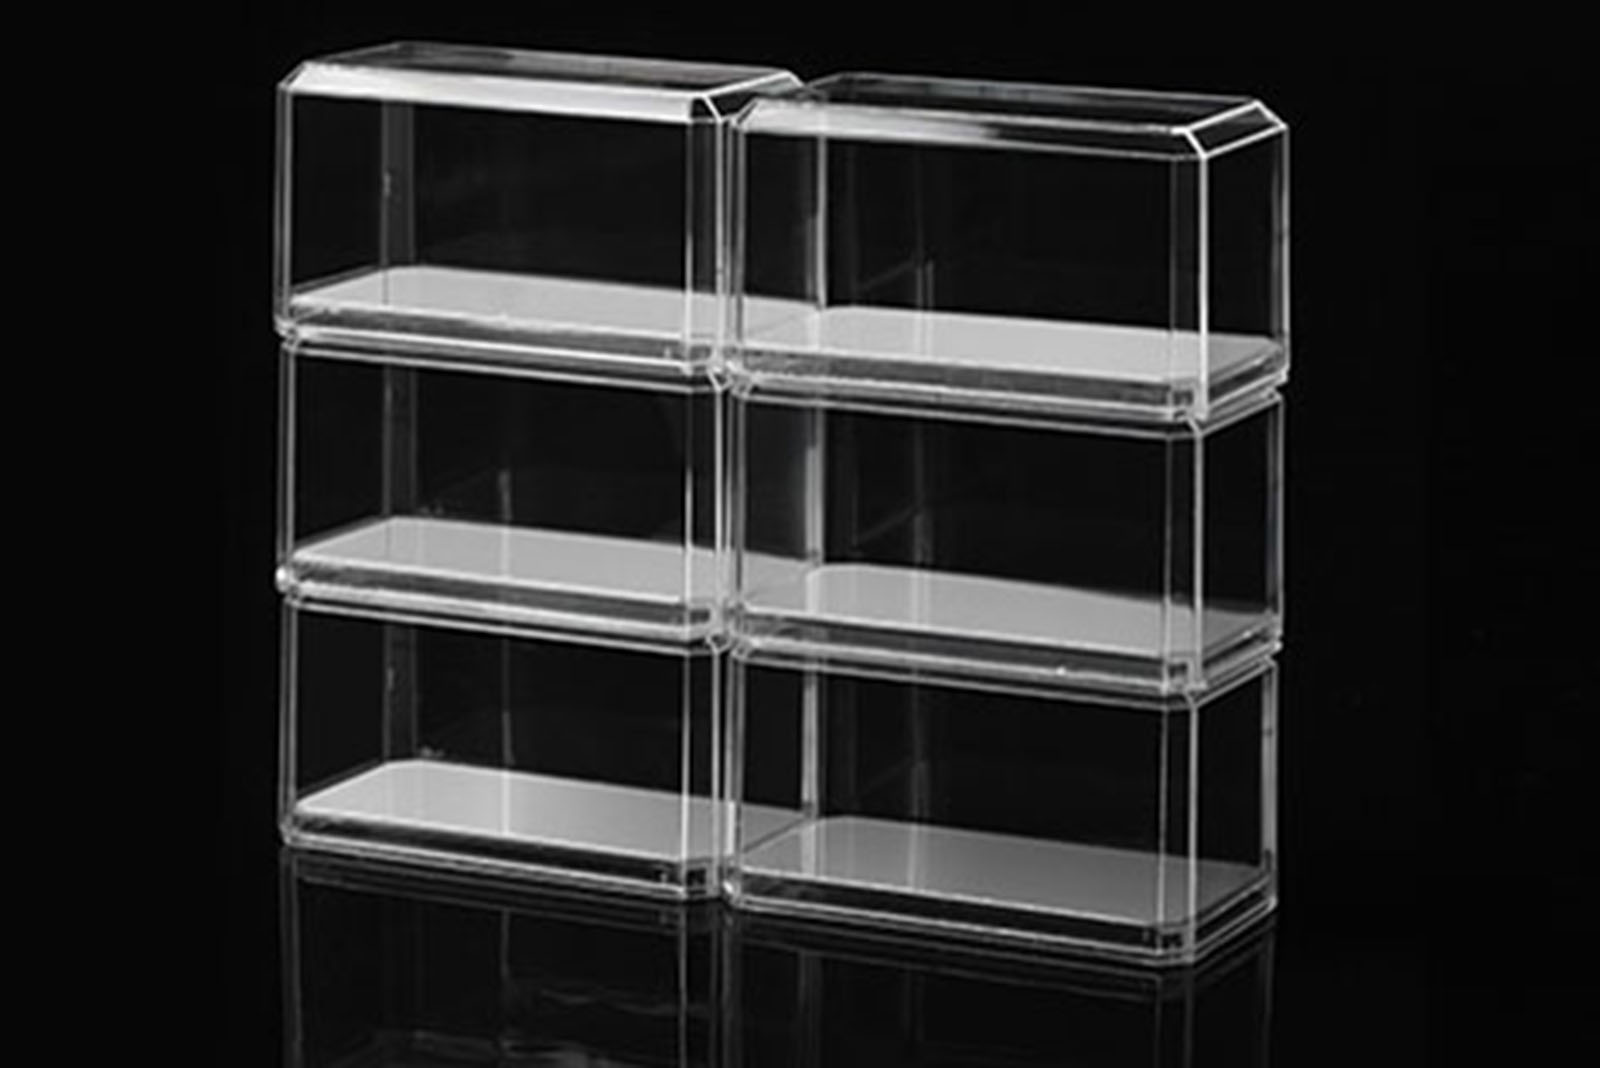 hochwertige acryl vitrine 1 15 1 18 1 24 1 43 1 64 mit 3m haftpads ebay. Black Bedroom Furniture Sets. Home Design Ideas